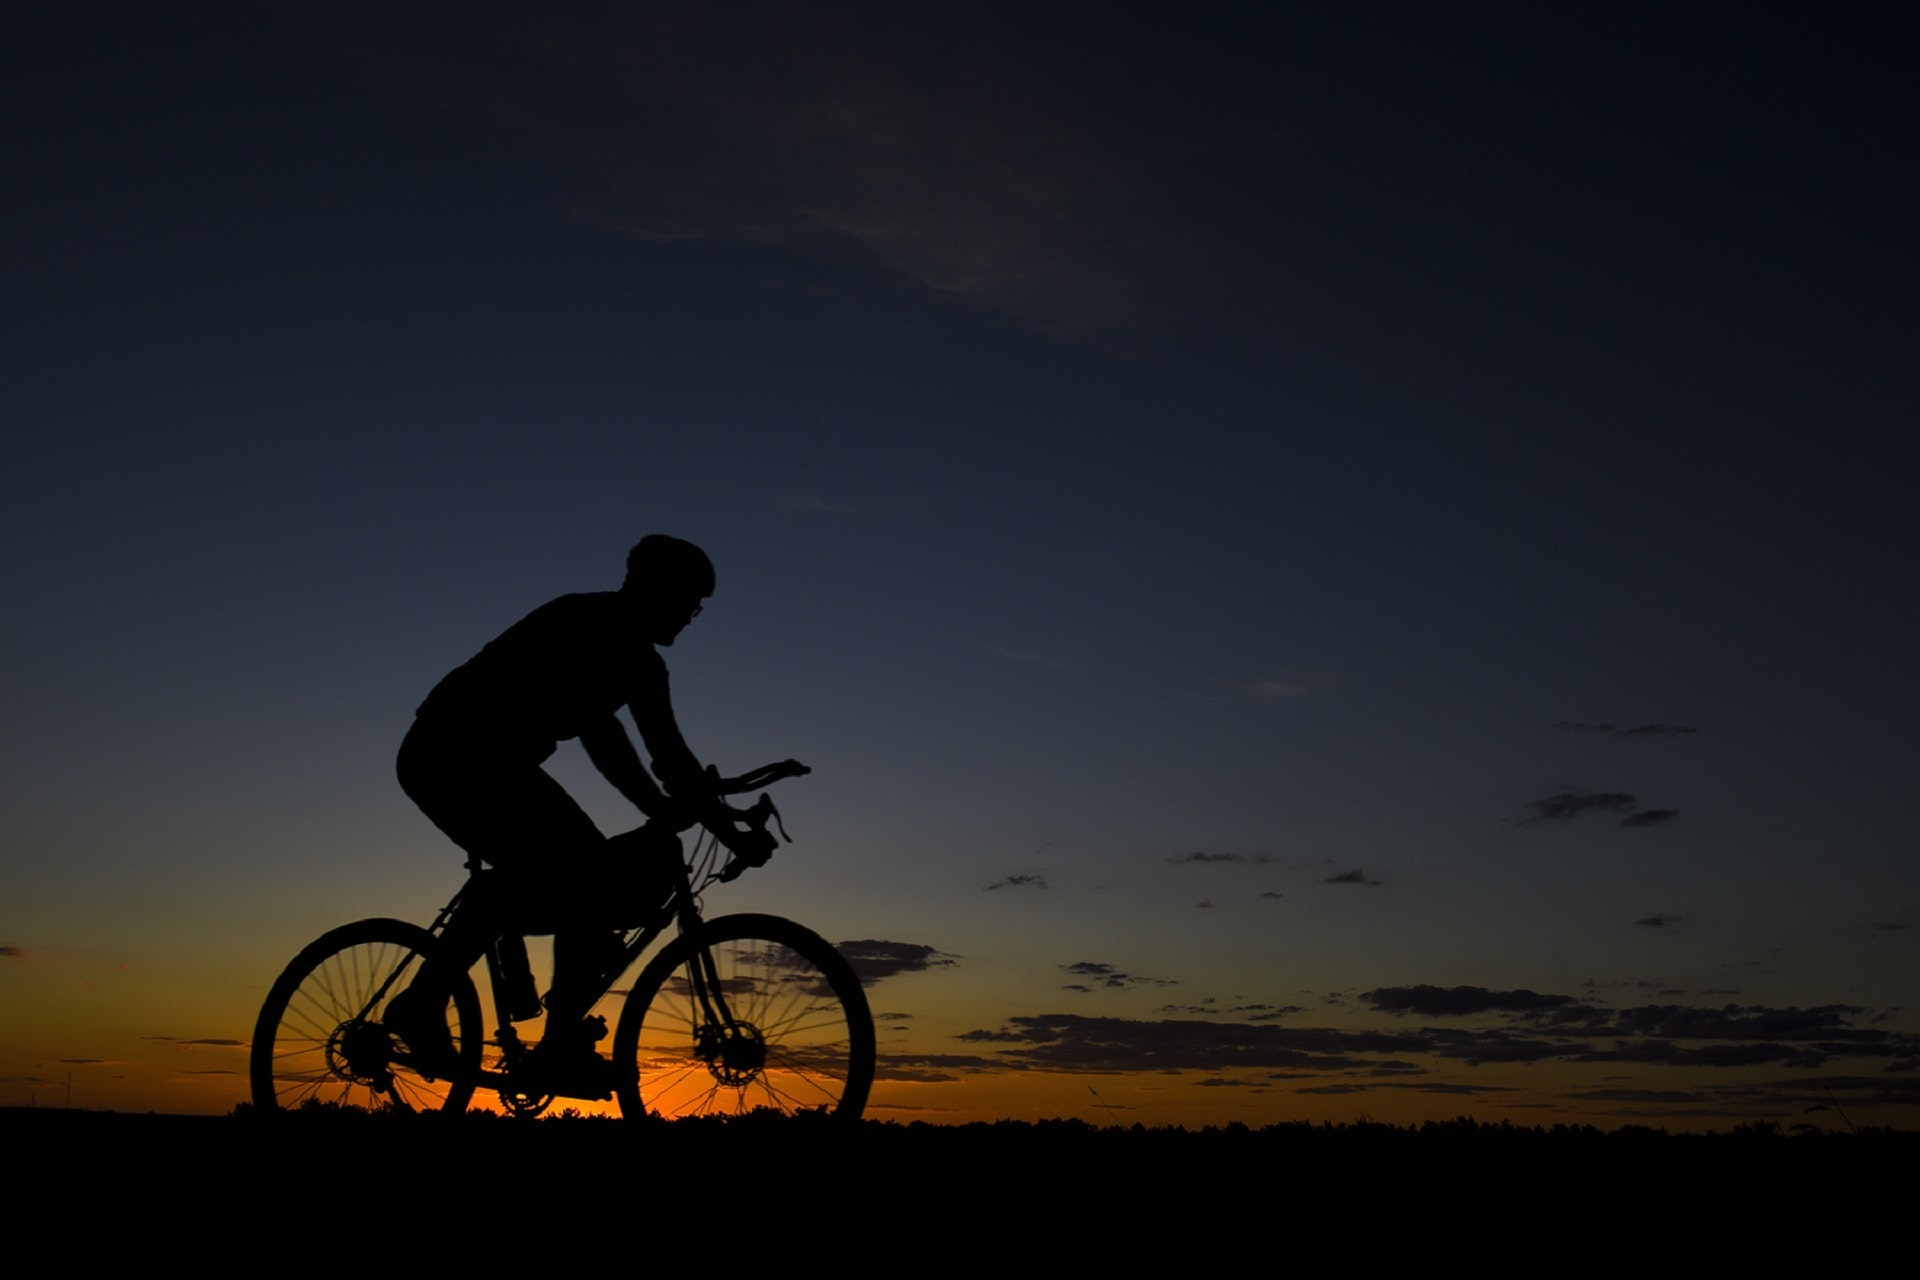 Man Riding Bicycle during Nightfall, Action, Landscape, Vehicle, Sunset, HQ Photo